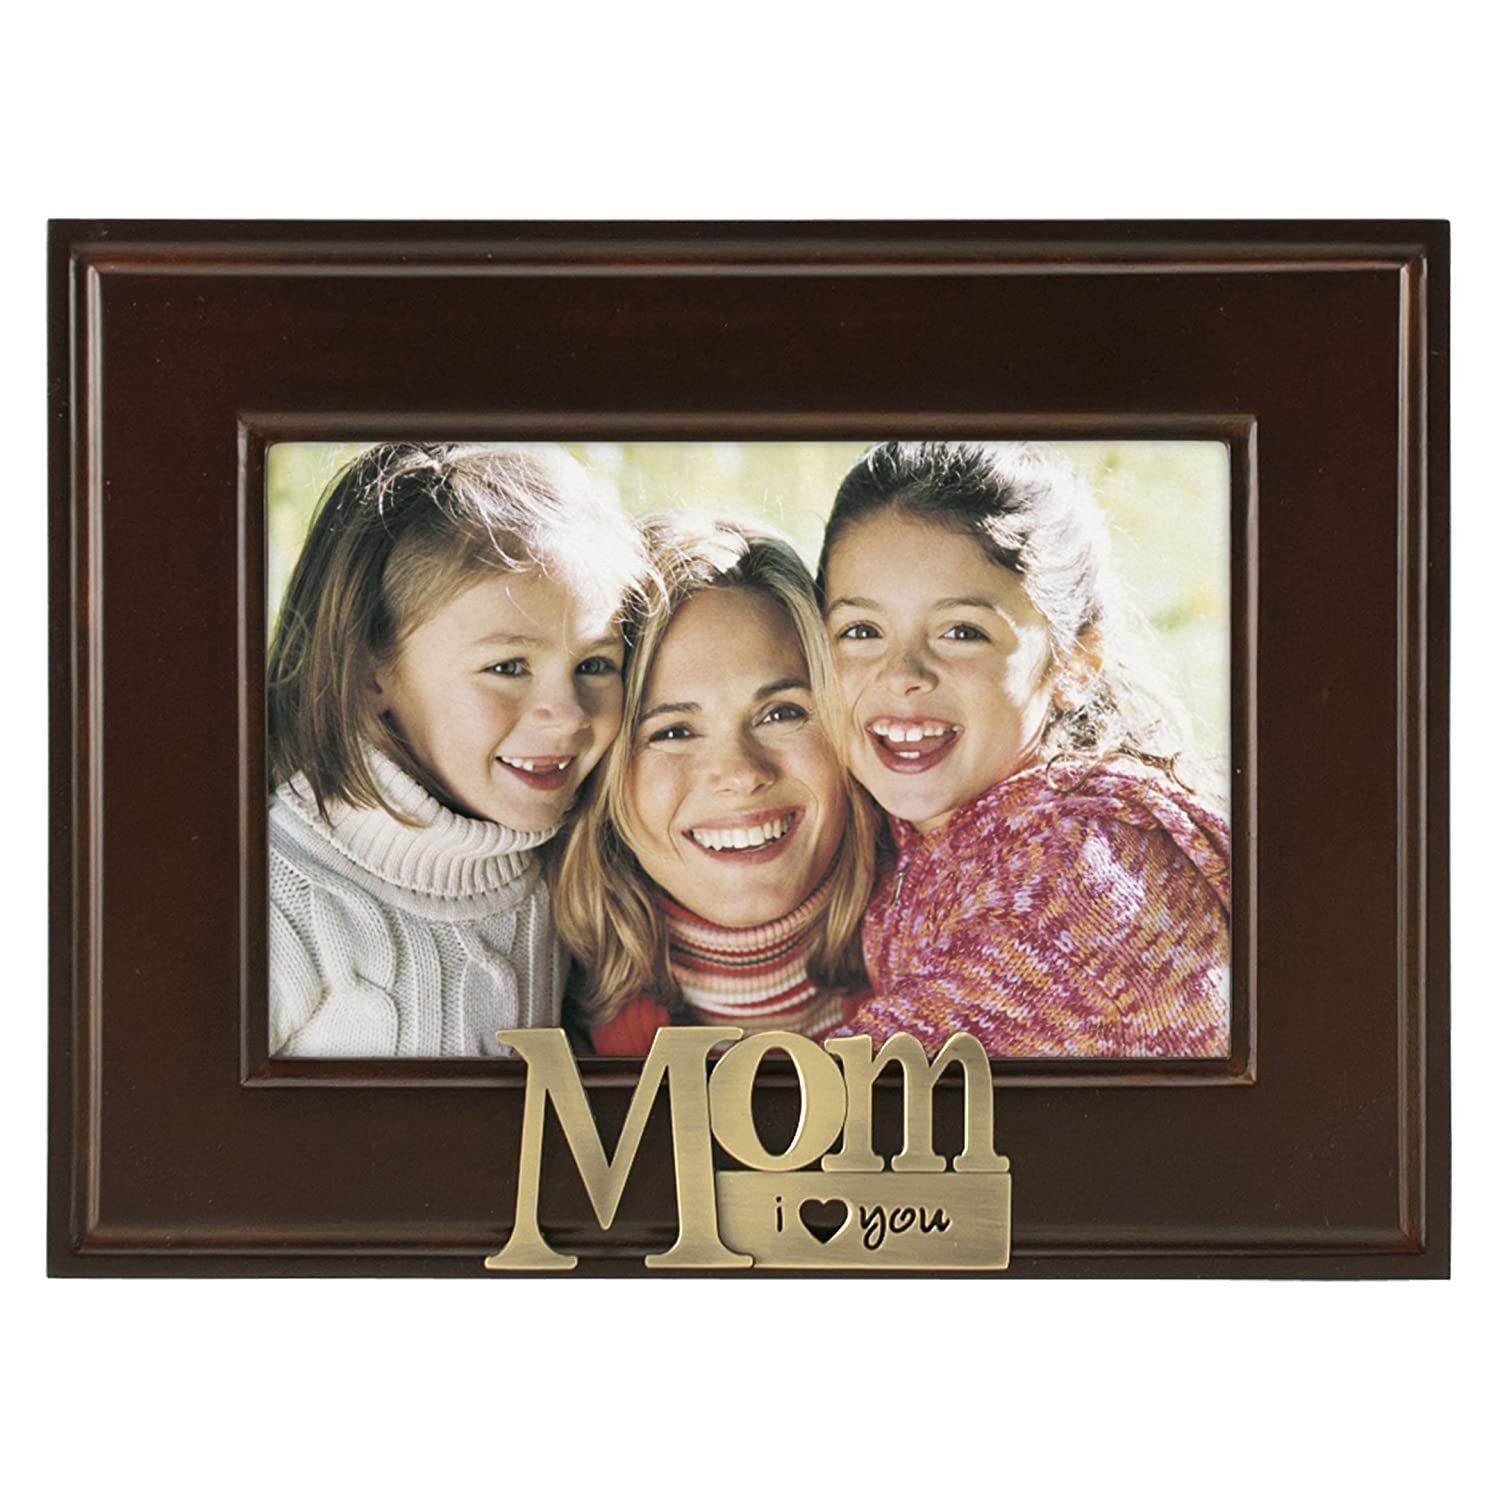 malden i heart brass word dad picture frame 4 inch by 6 inch amazonca home kitchen - Mom Picture Frames